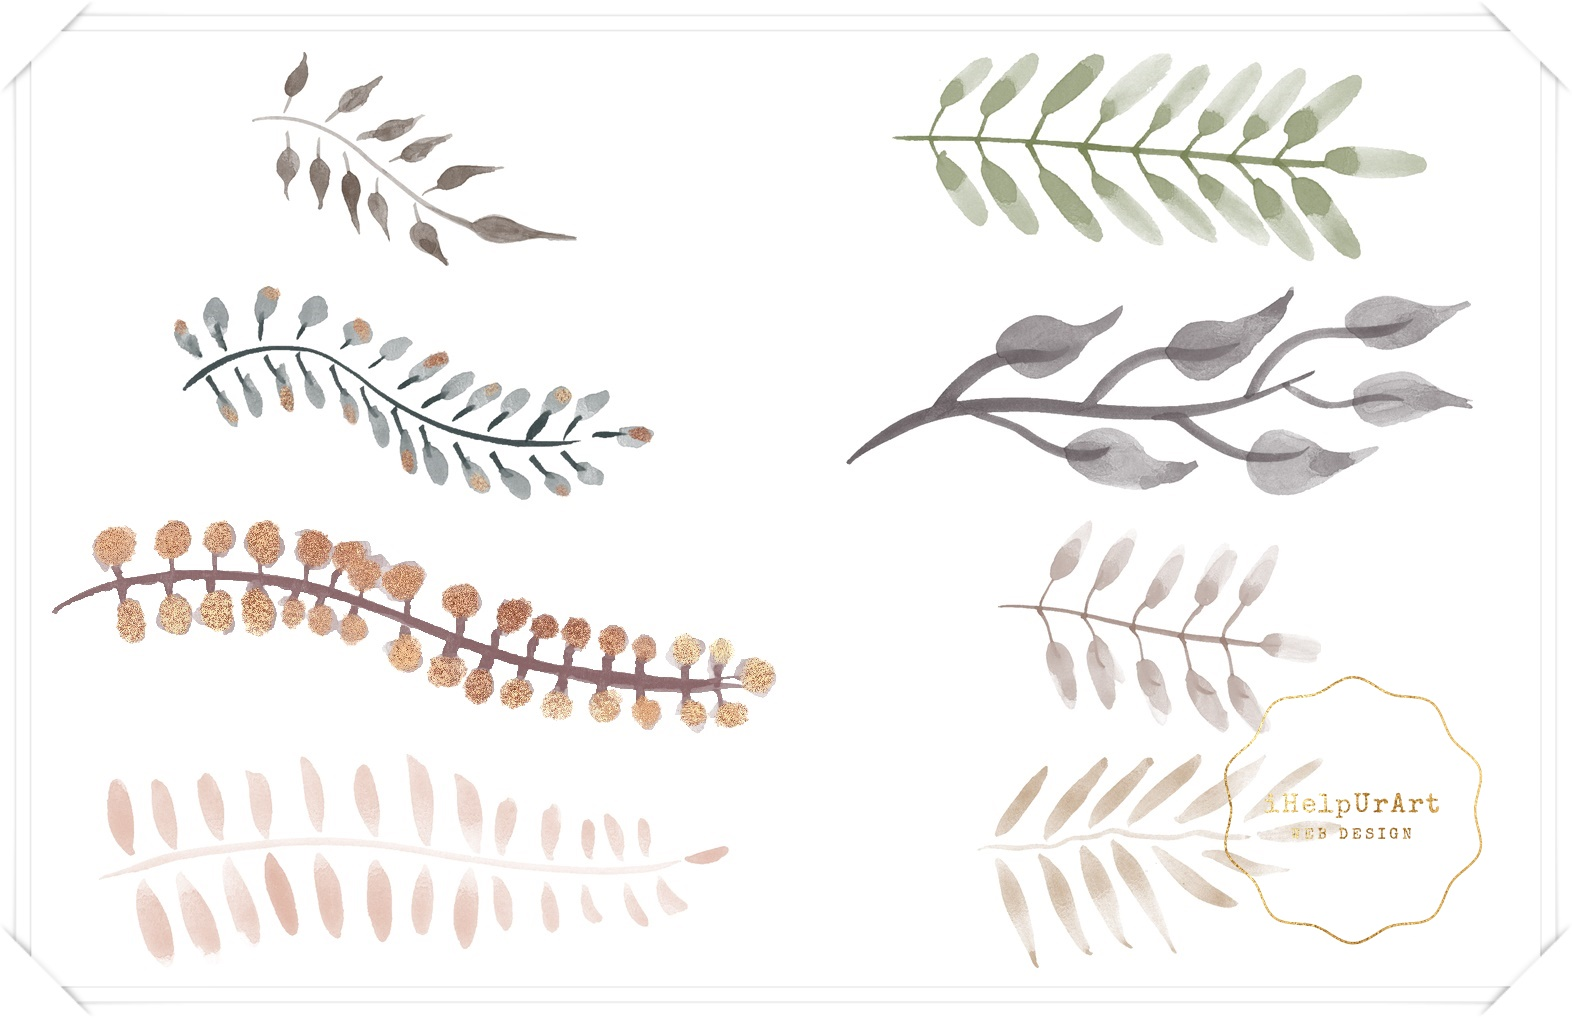 Watercolor and Copper Botanical Cip Art example image 4